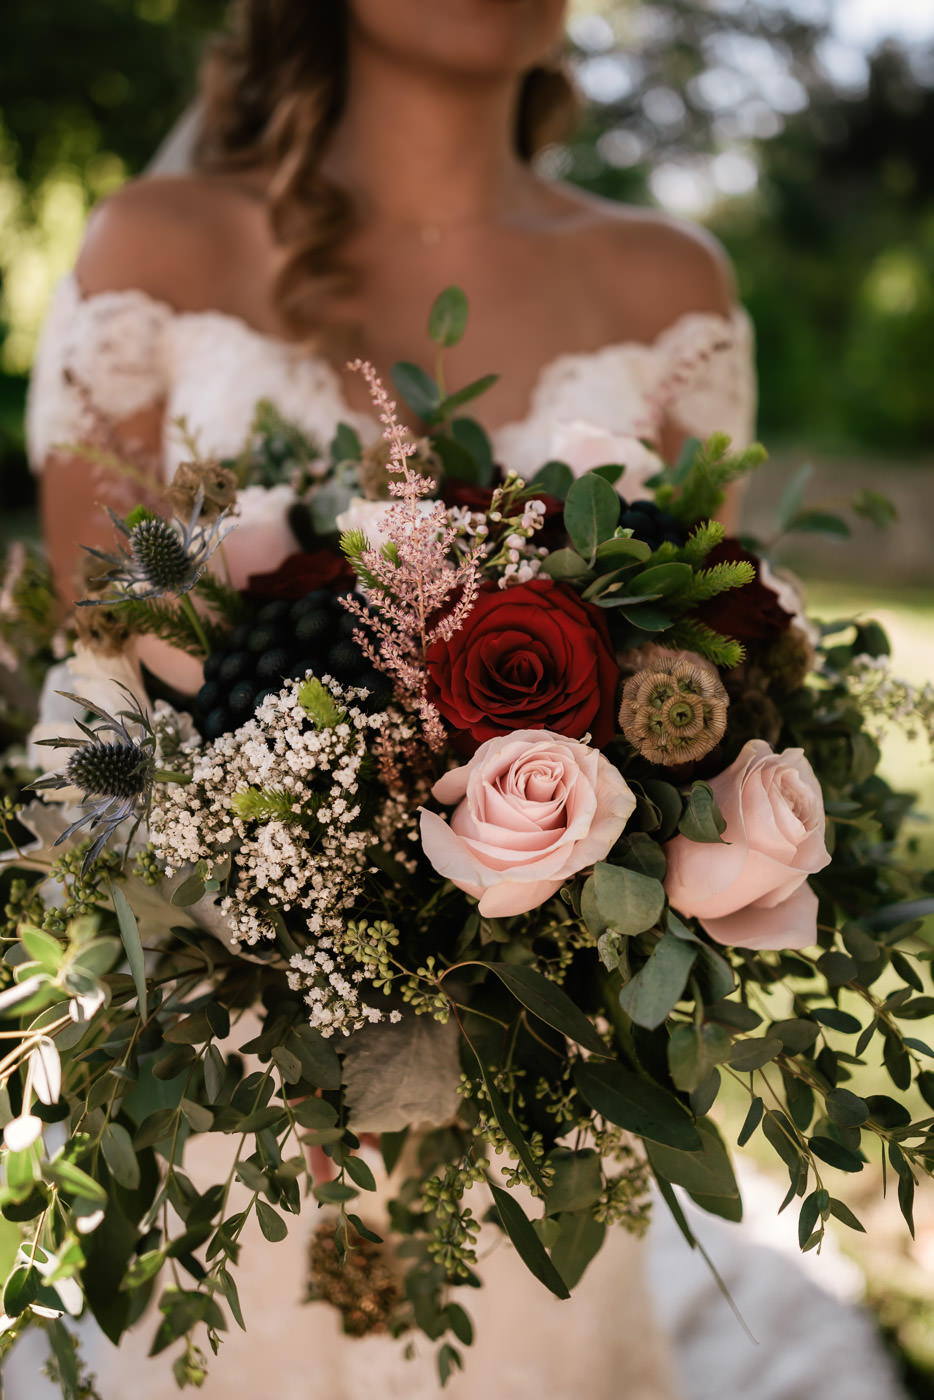 Beautiful rose bouquet with eucalyptus other rustic details.